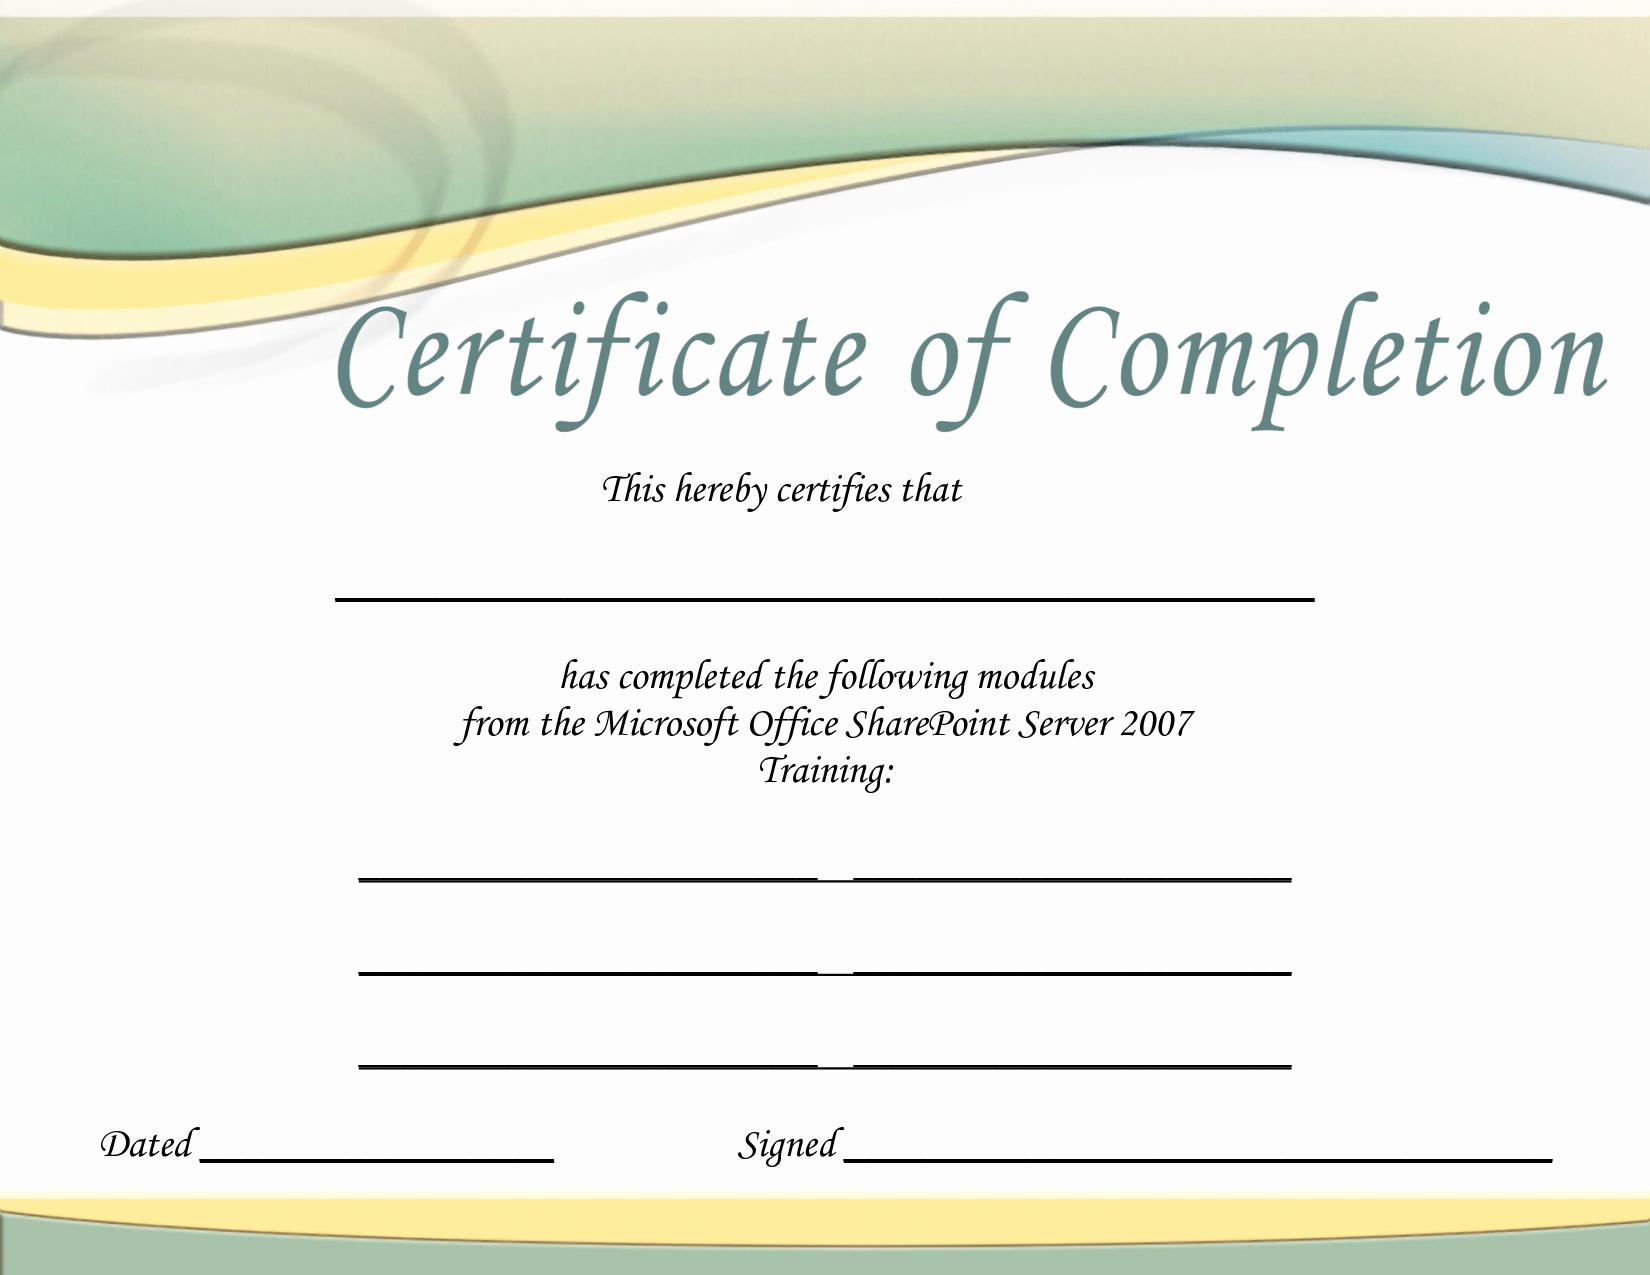 Microsoft Word Certificate Templates Free Unique Training Certificate Template Printable Microsoft Office Doc